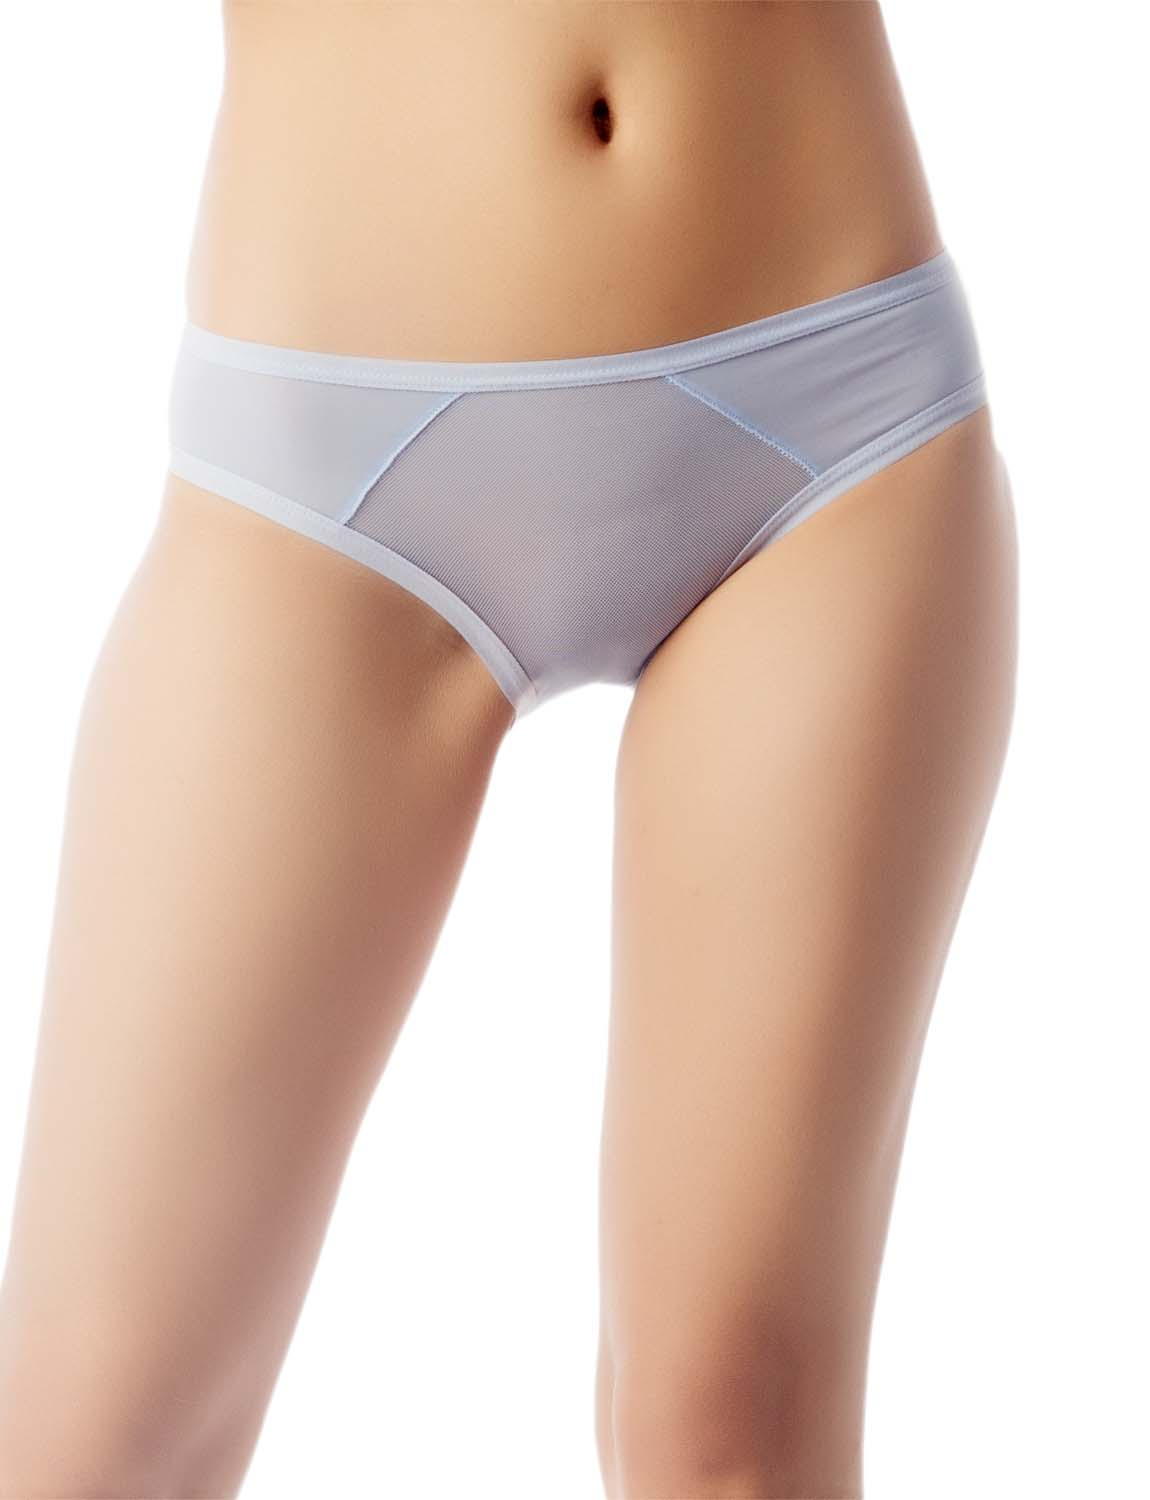 Women's Sheer See-Through Underwear Fashionable Mesh Low Rise Brief Panty, Size: M, Sky Blue